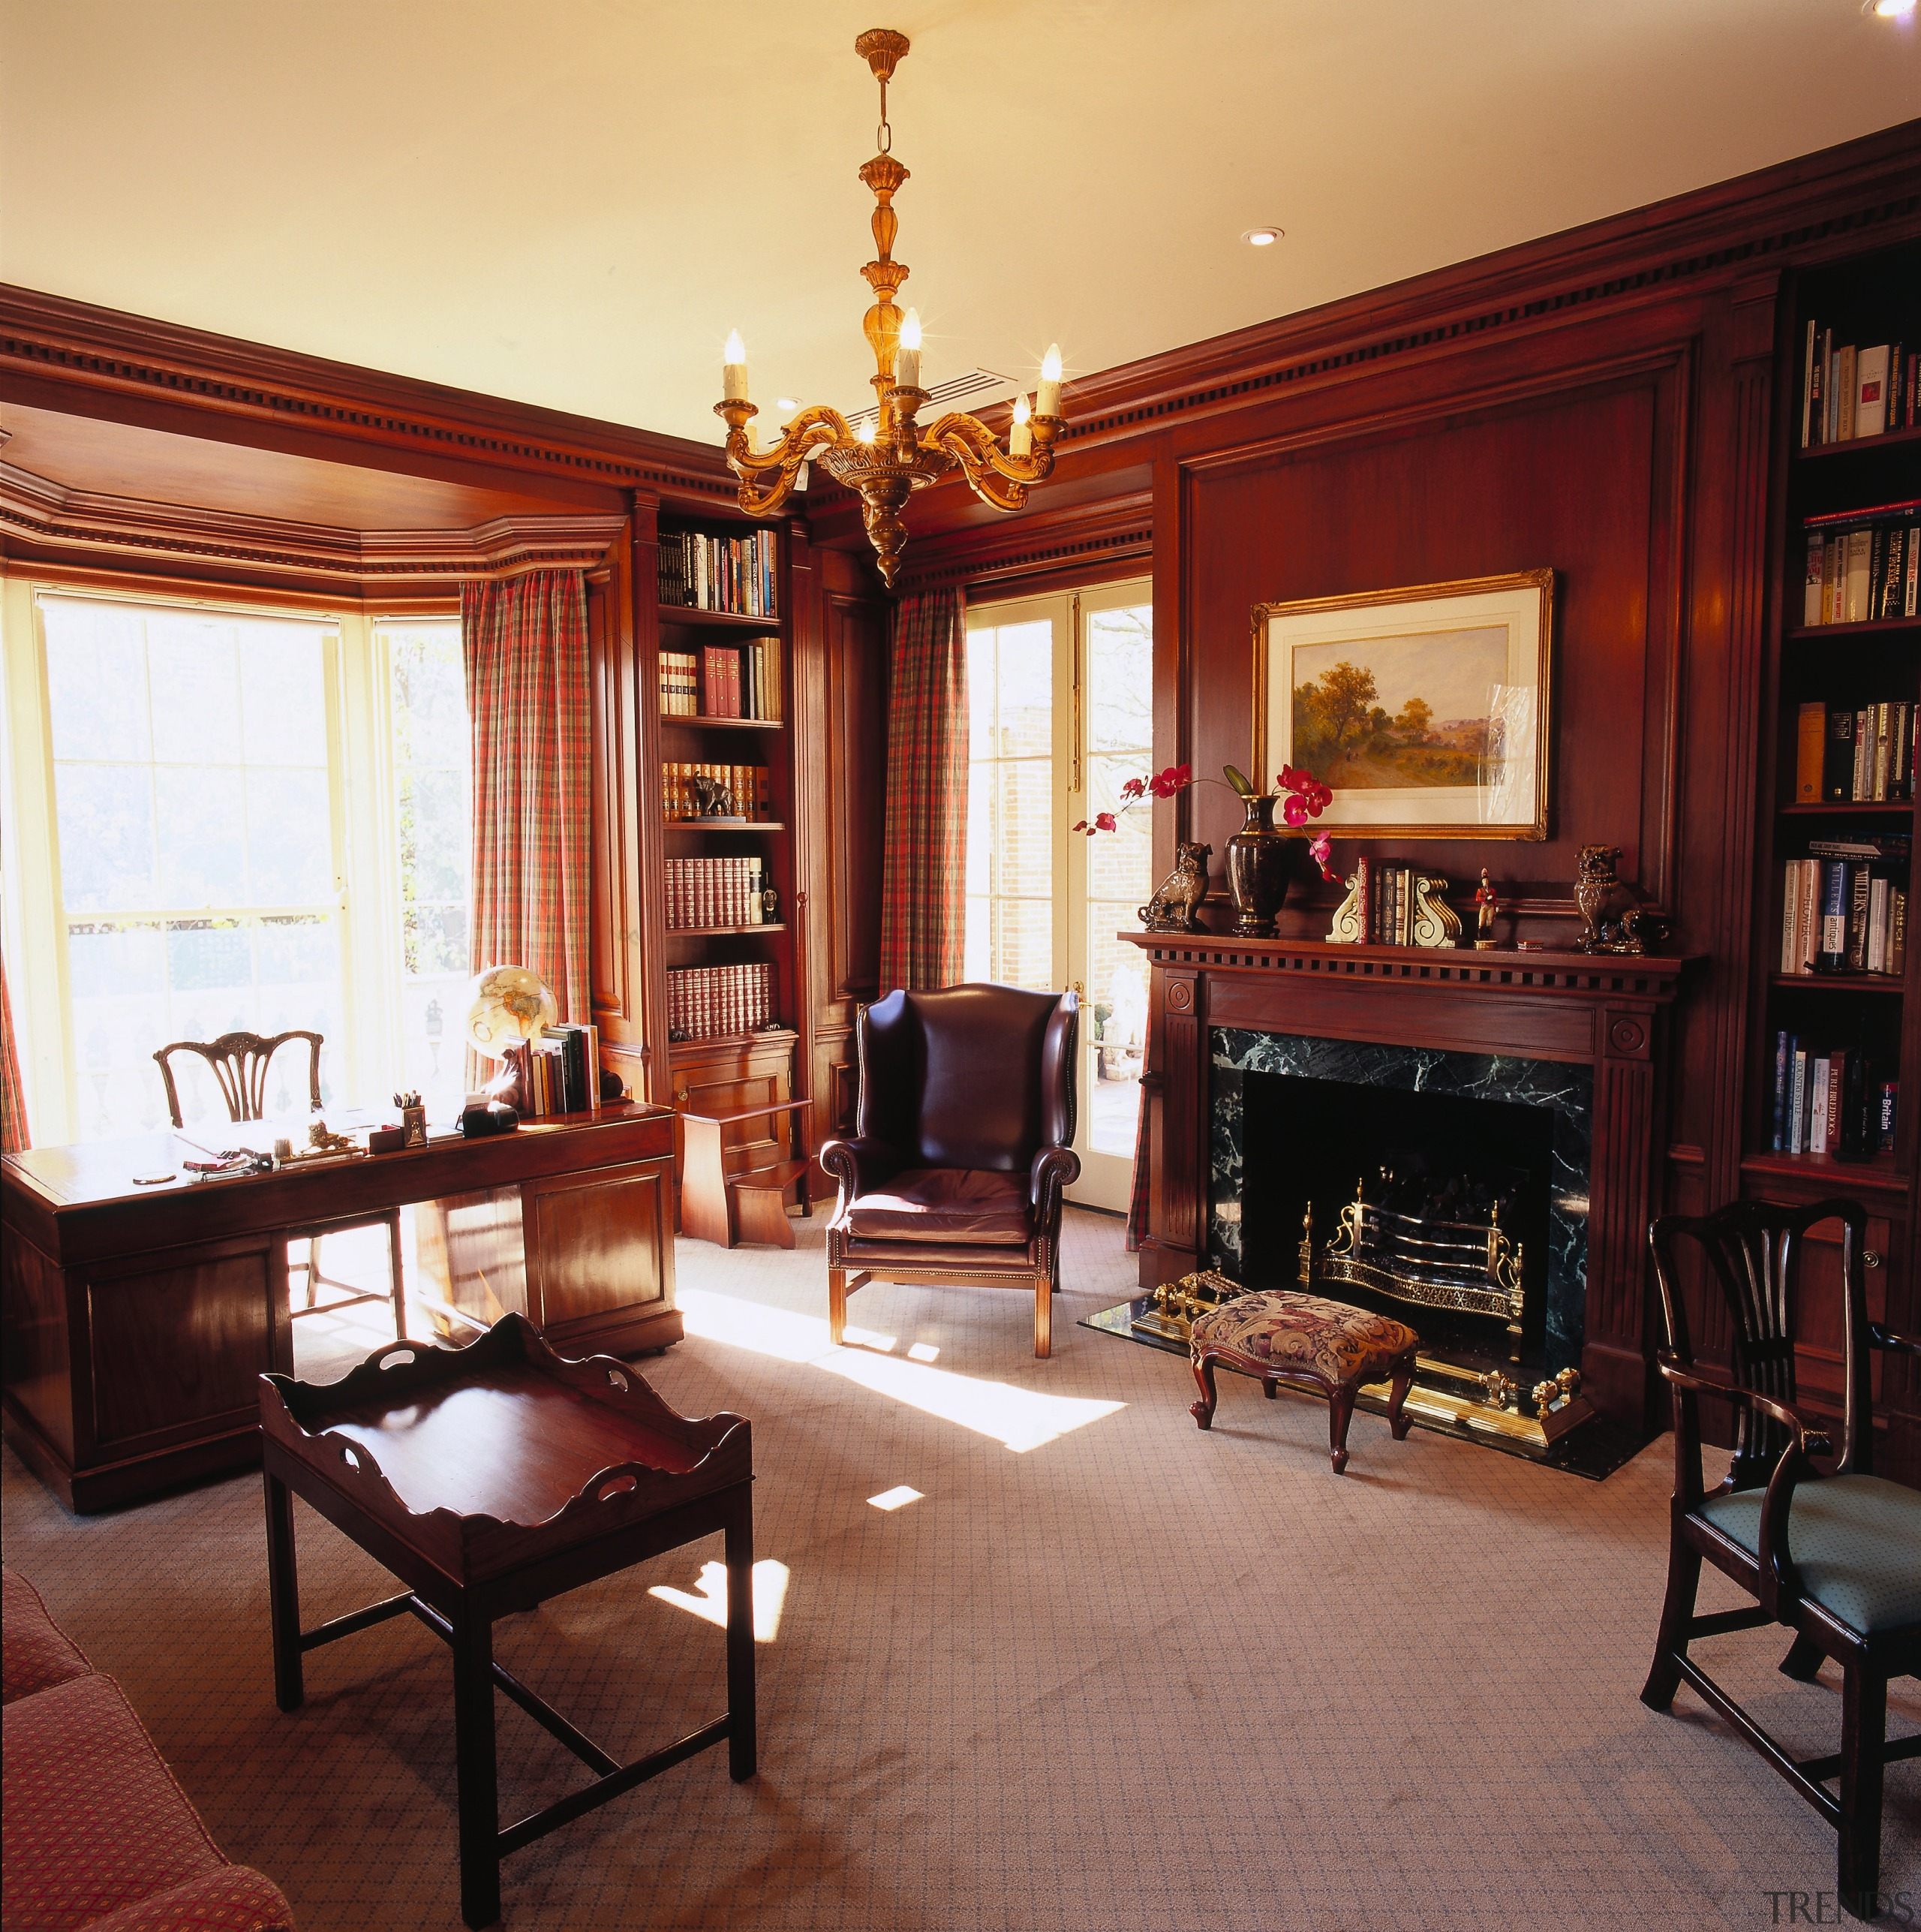 View of the study/ library, Brazillian mahogony wall-to-wall furniture, home, interior design, living room, room, window, red, orange